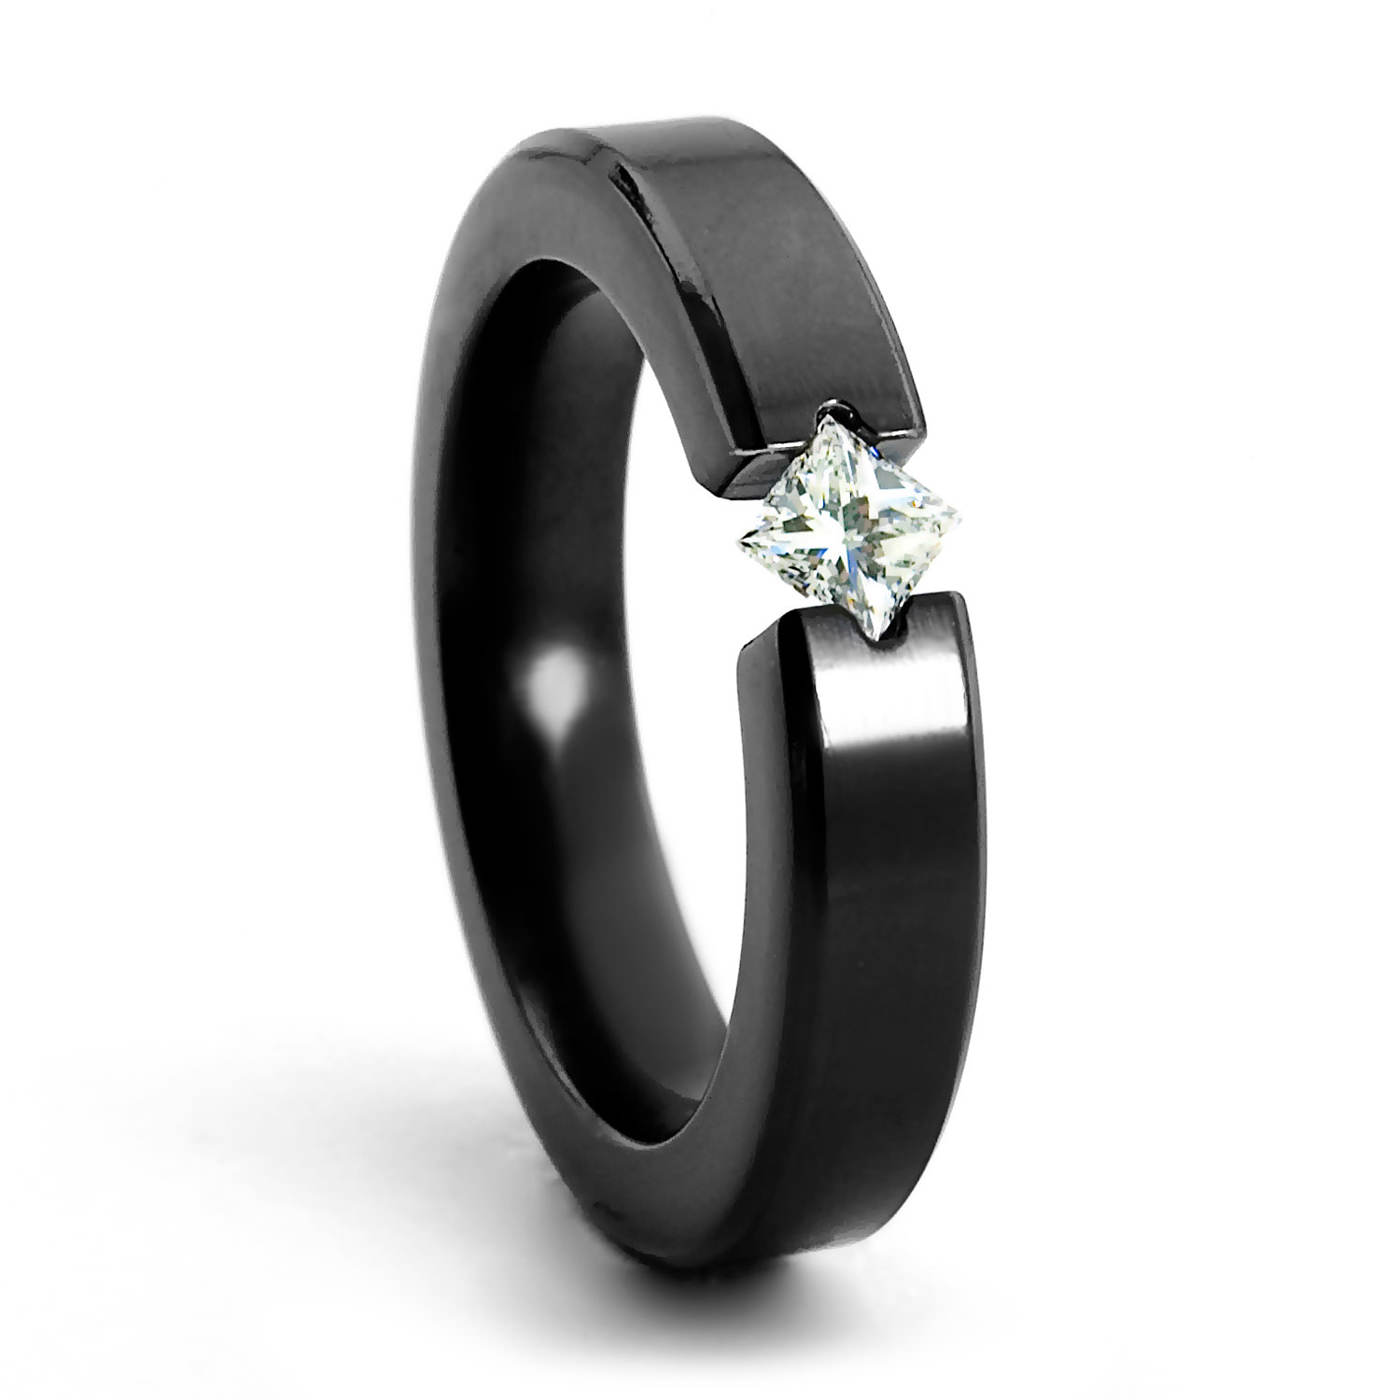 us black macy ring macys jewelry s rings diamond tw gallery in ct silver mens lyst sterling men product normal